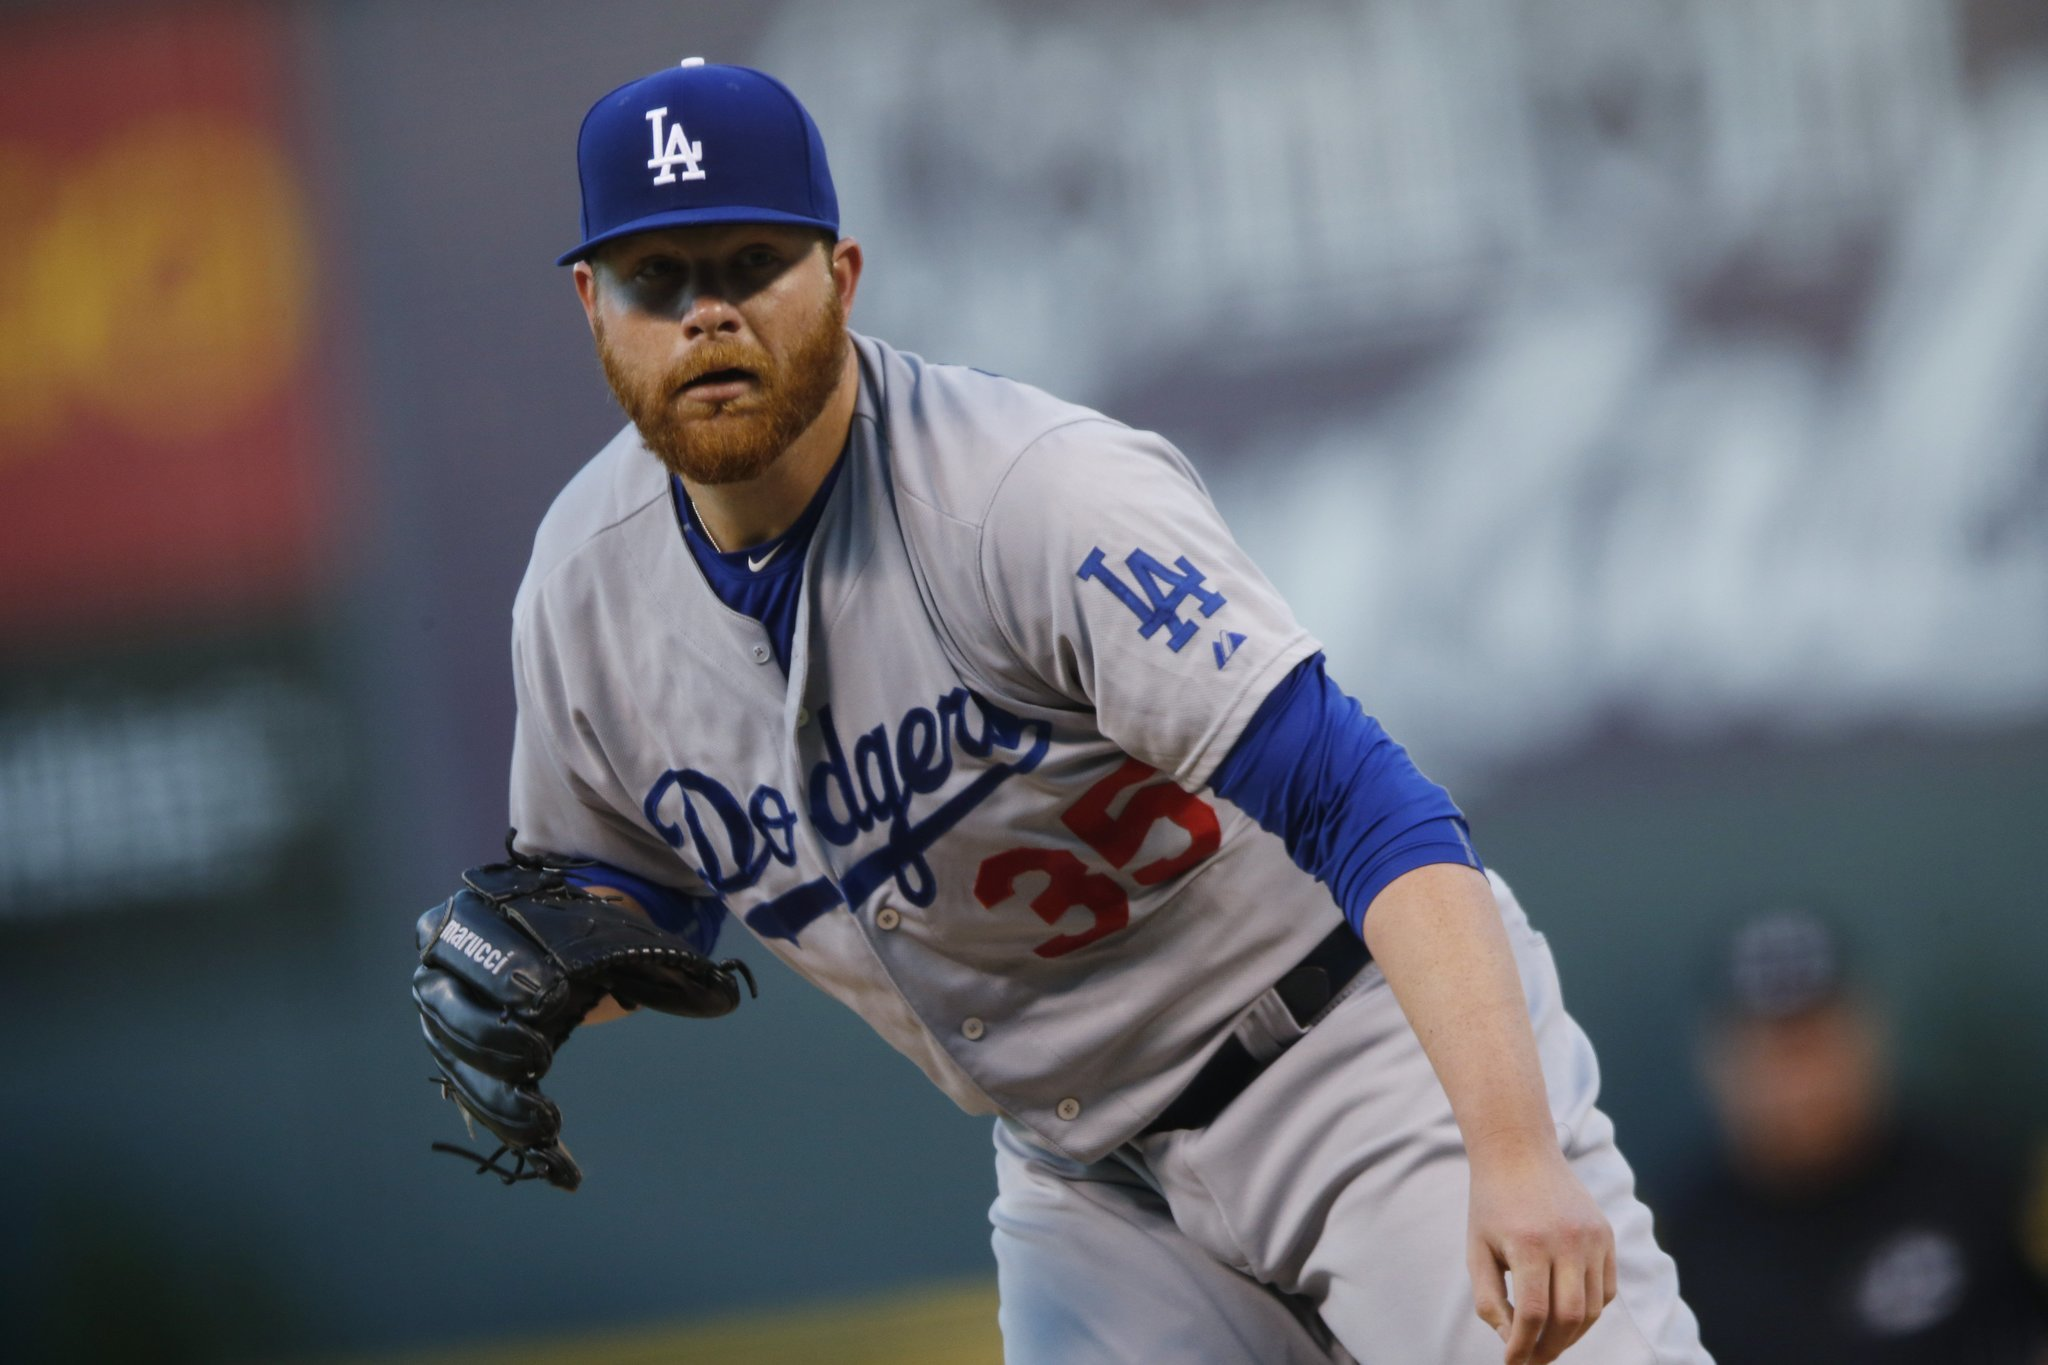 Cubs agree to deal with left-hander Brett Anderson, pending physical